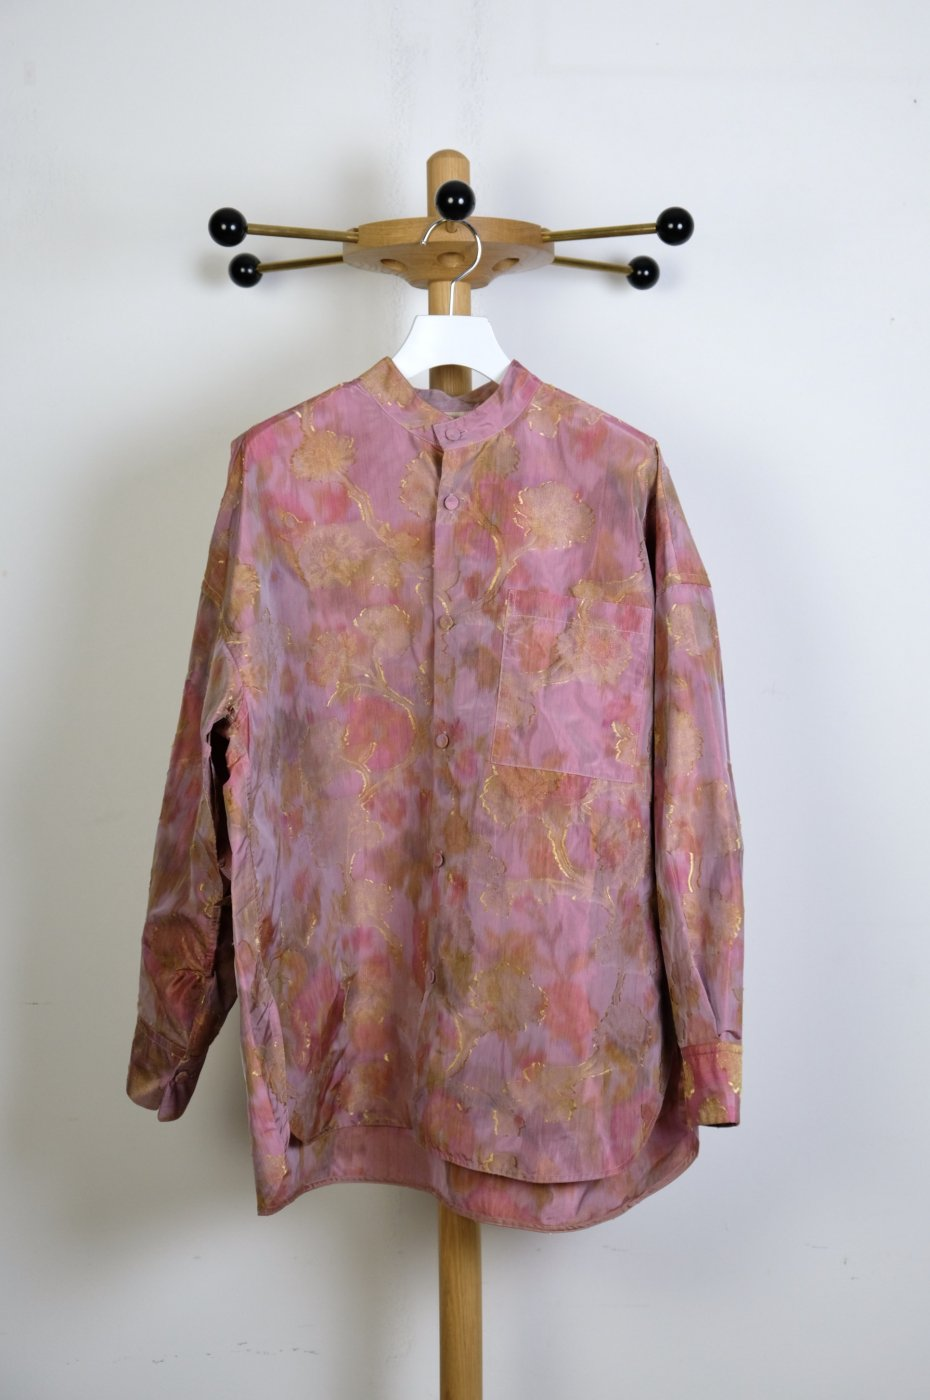 <img class='new_mark_img1' src='https://img.shop-pro.jp/img/new/icons8.gif' style='border:none;display:inline;margin:0px;padding:0px;width:auto;' />CURRENTAGE-IKAT JQ STAND COLLAR SHIRT-GARDEN